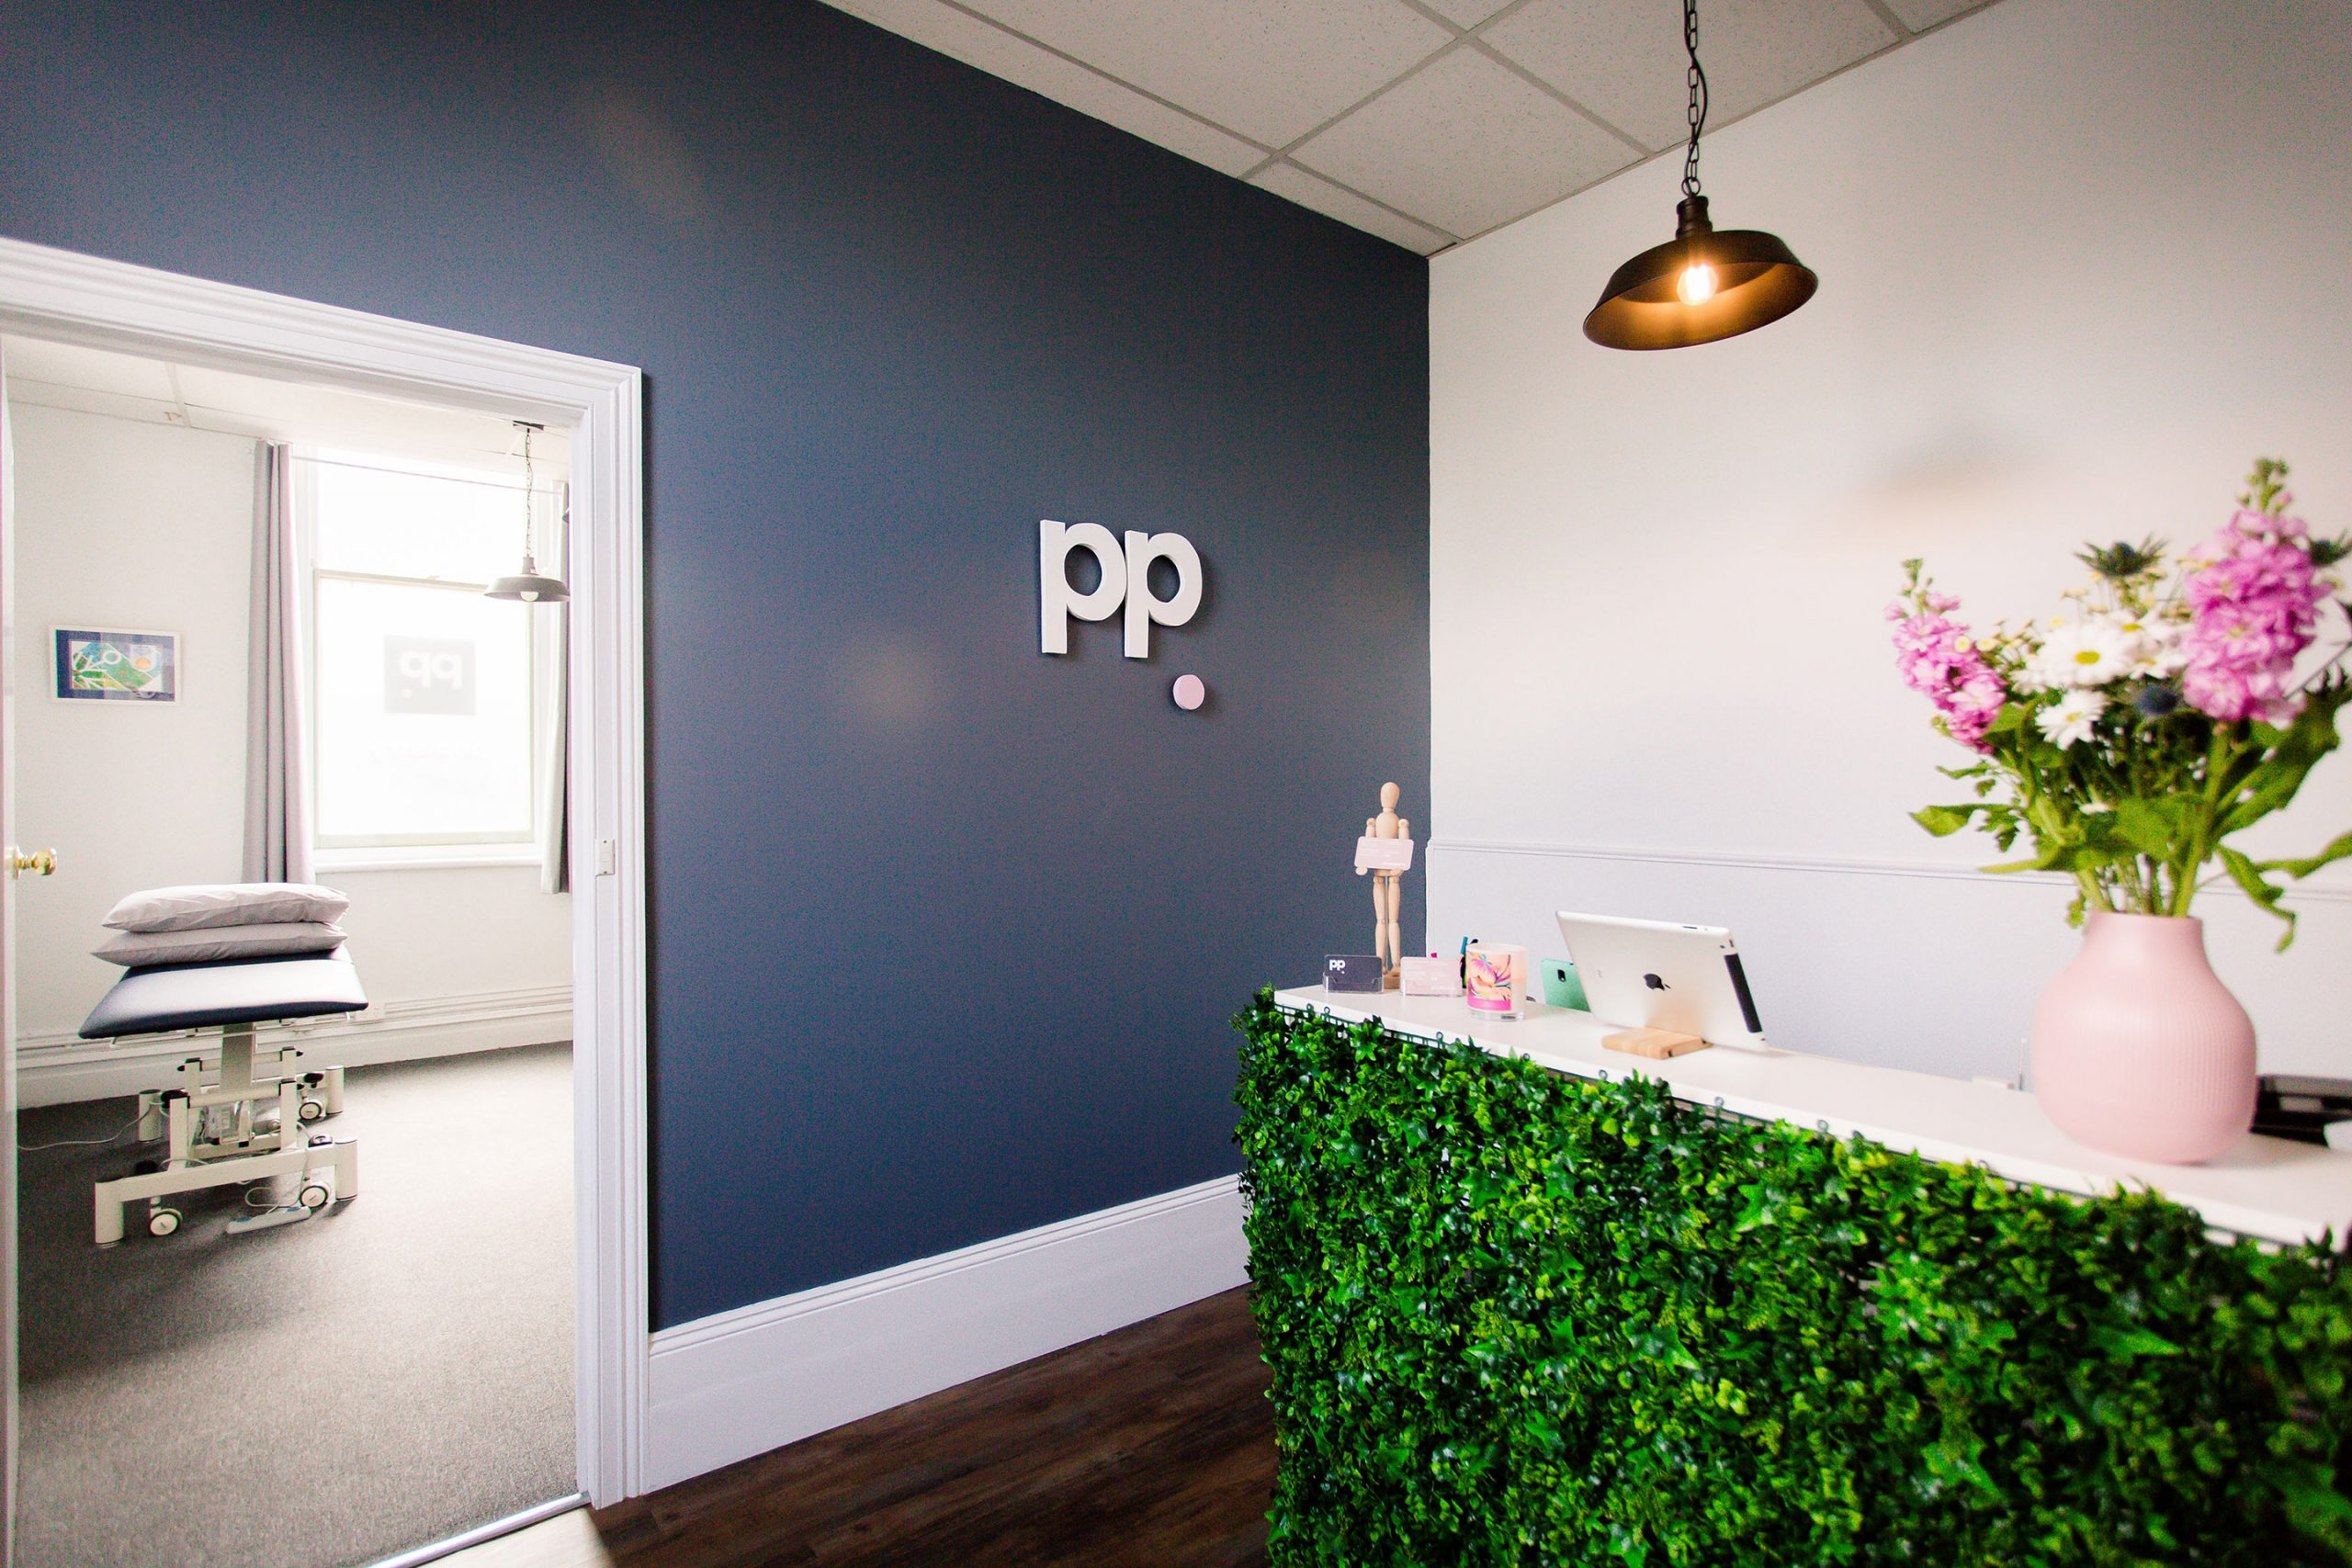 Reception area physio pod geelong | Podiatry and Physio Clinic